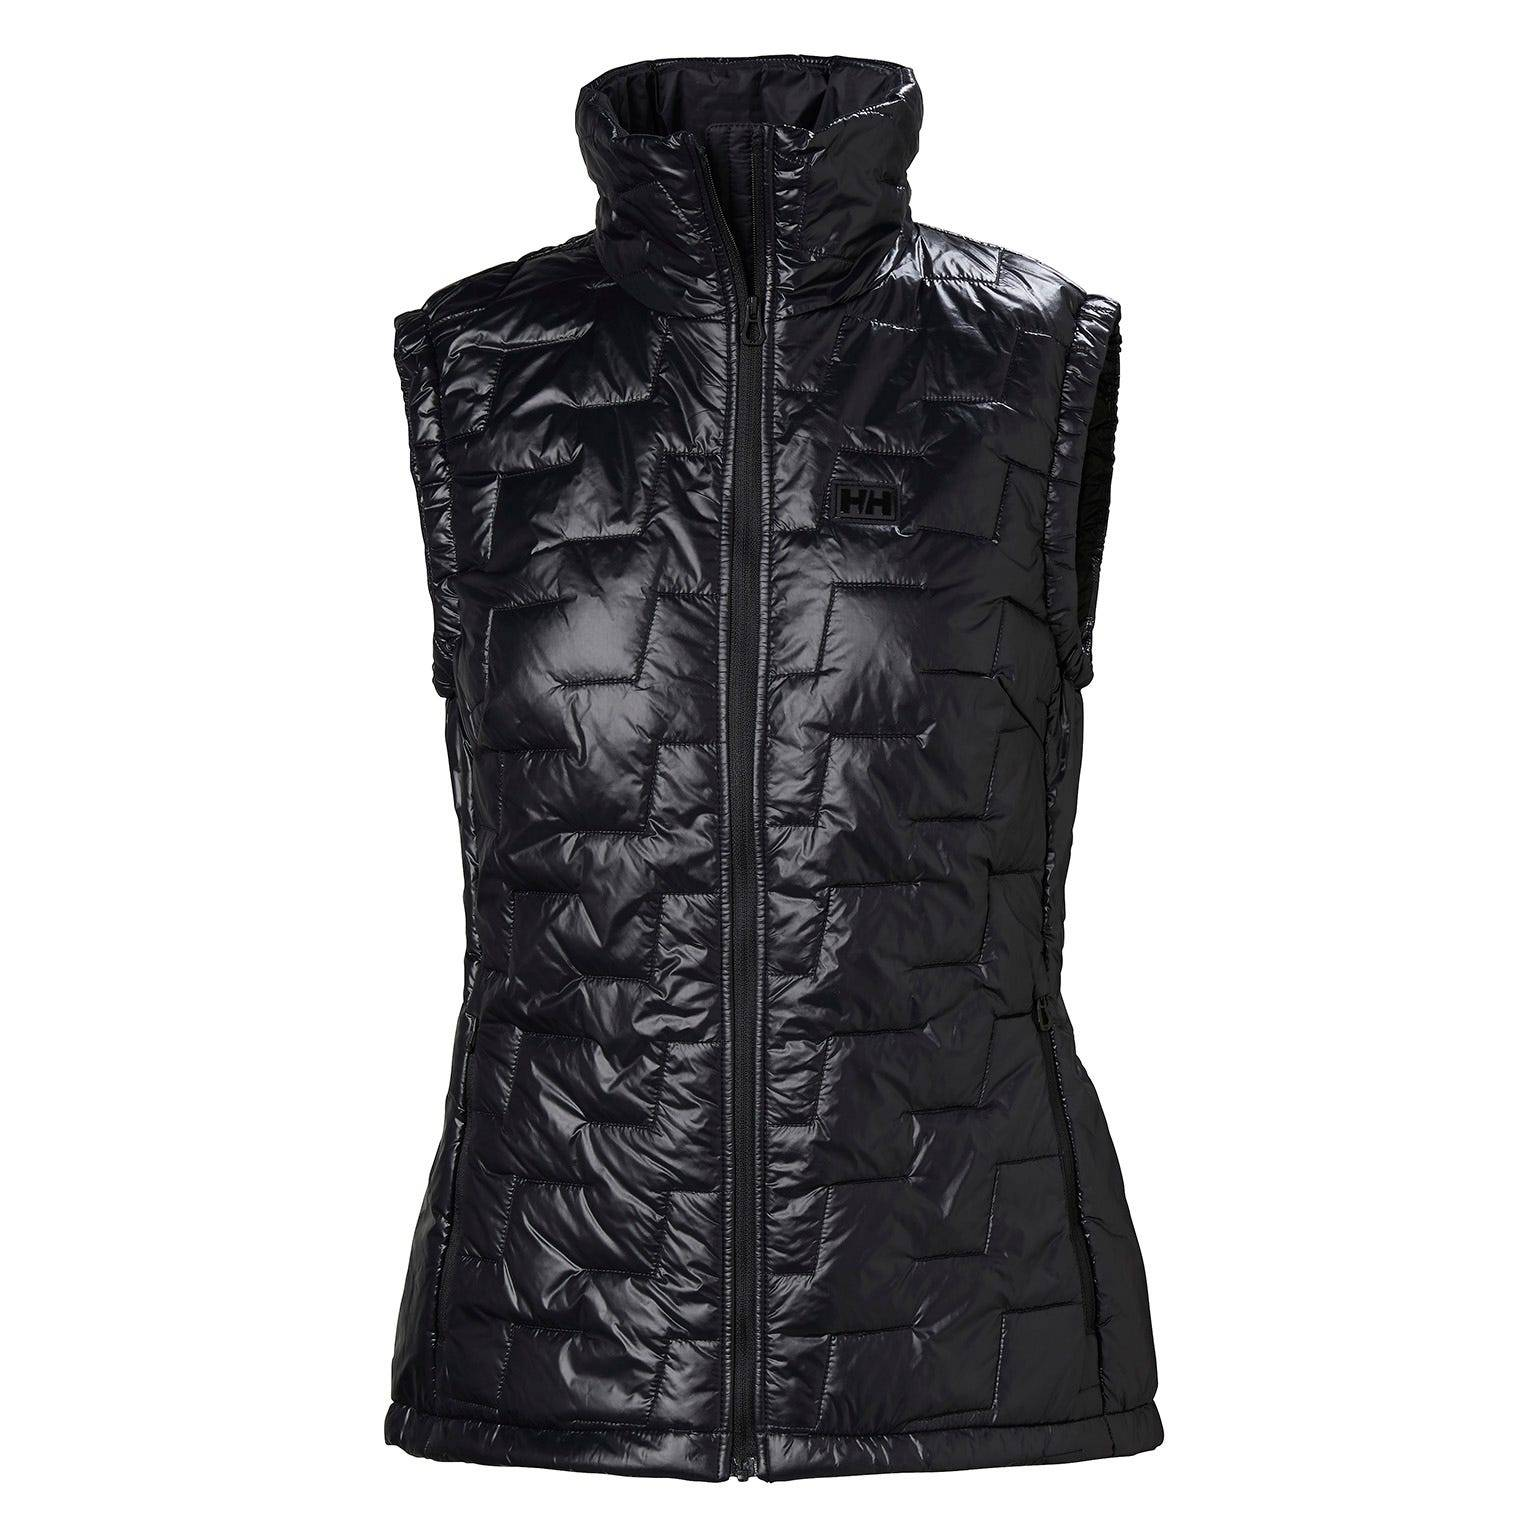 Helly Hansen W Lifaloft Insulator Vest Womens Midlayer Black M